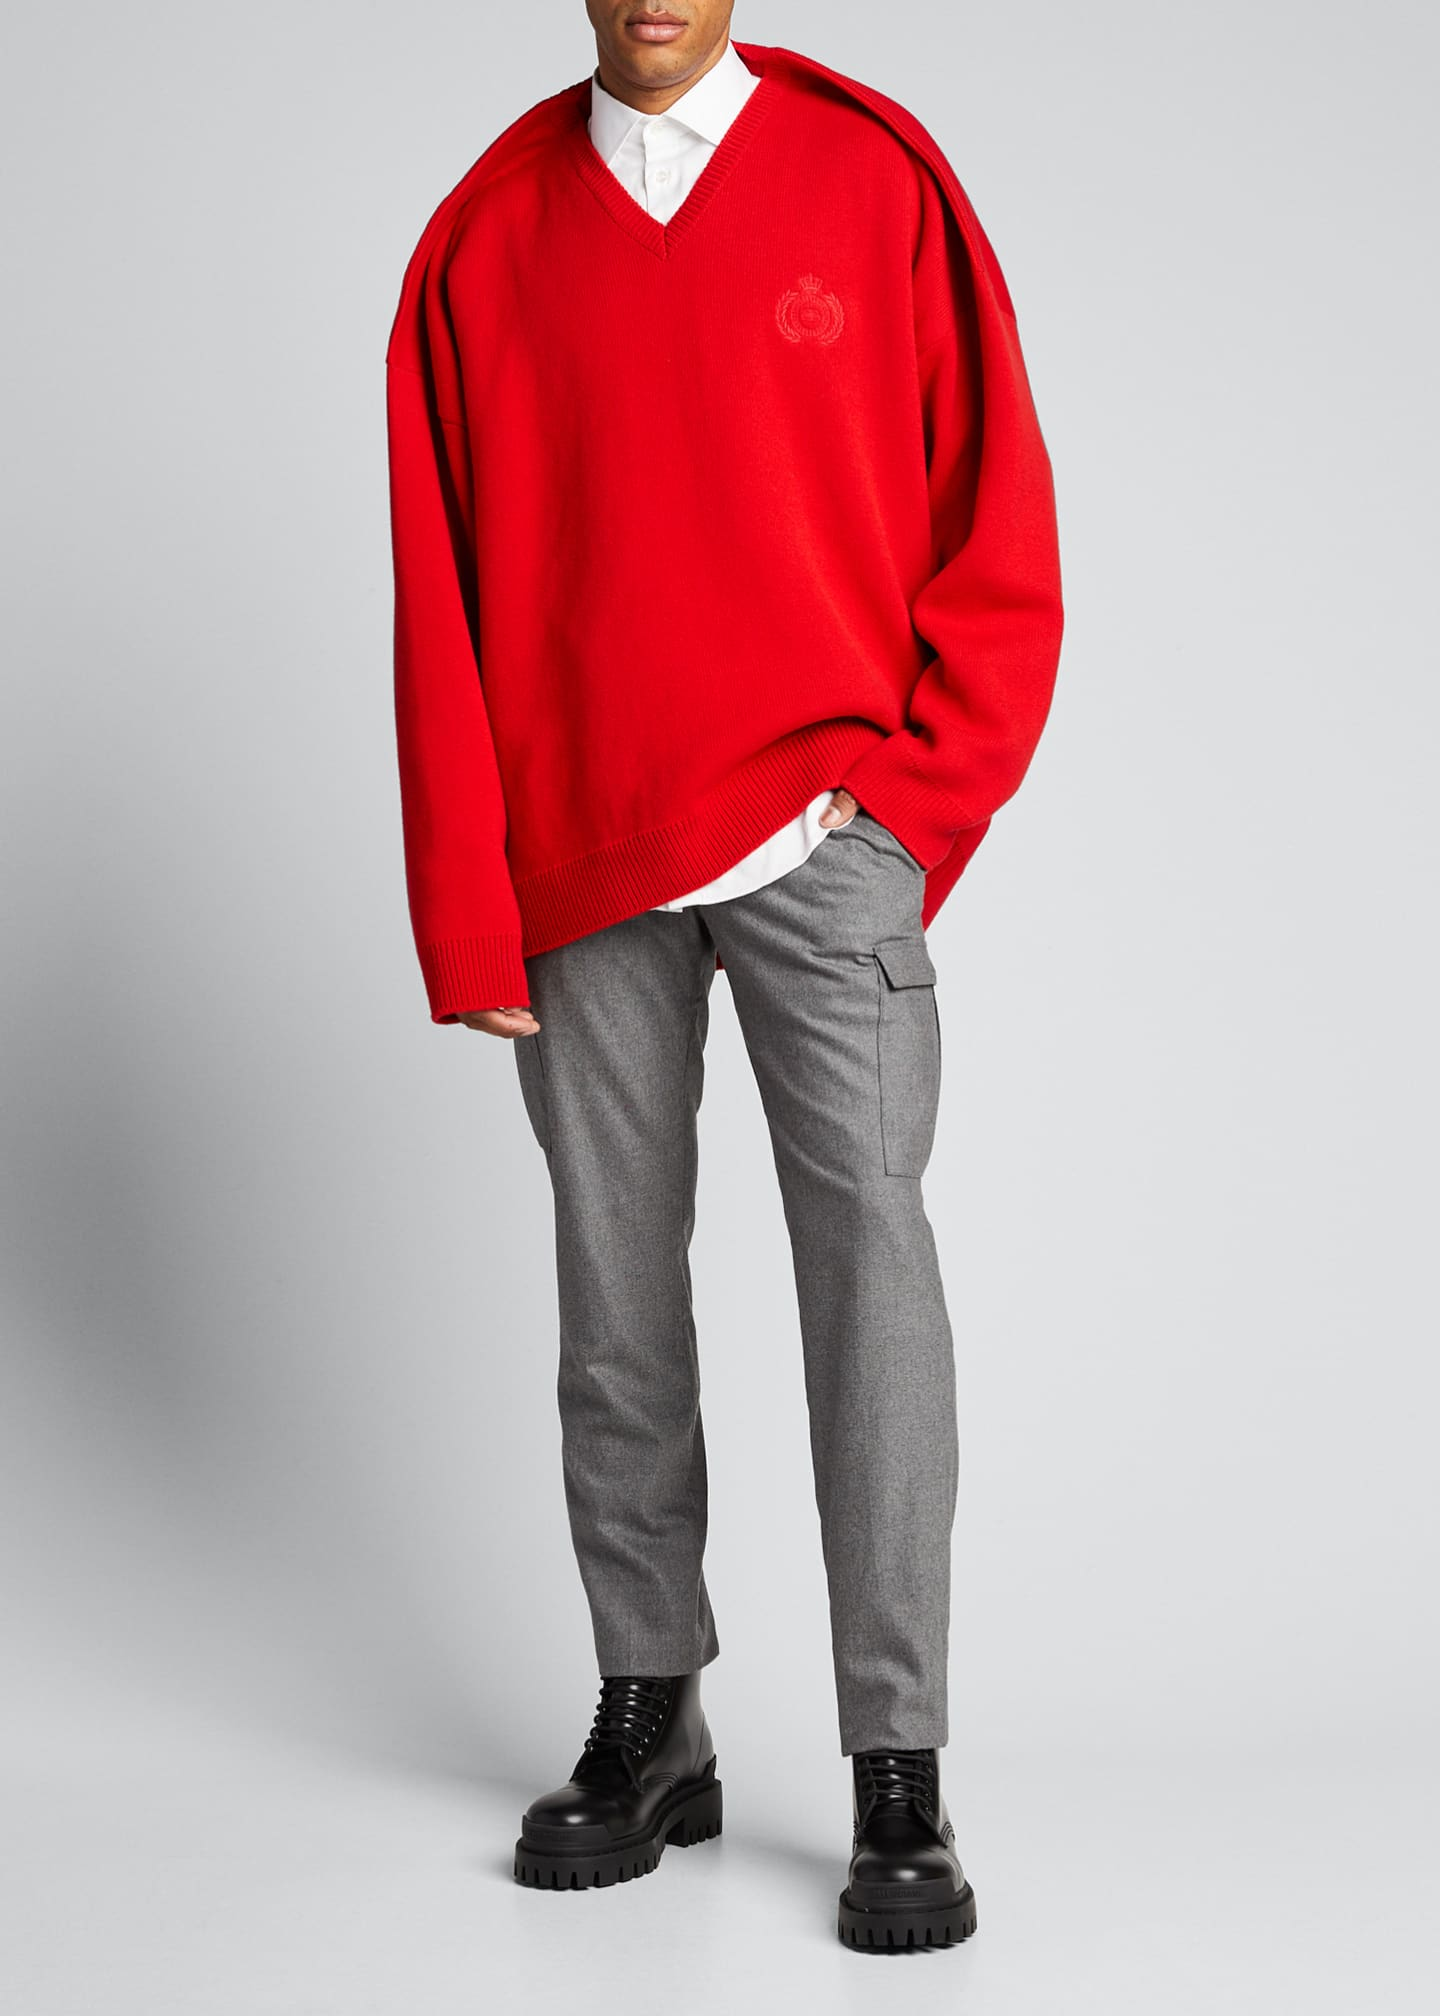 Balenciaga Men's V-Neck Pinched-Shoulder Oversized Sweater